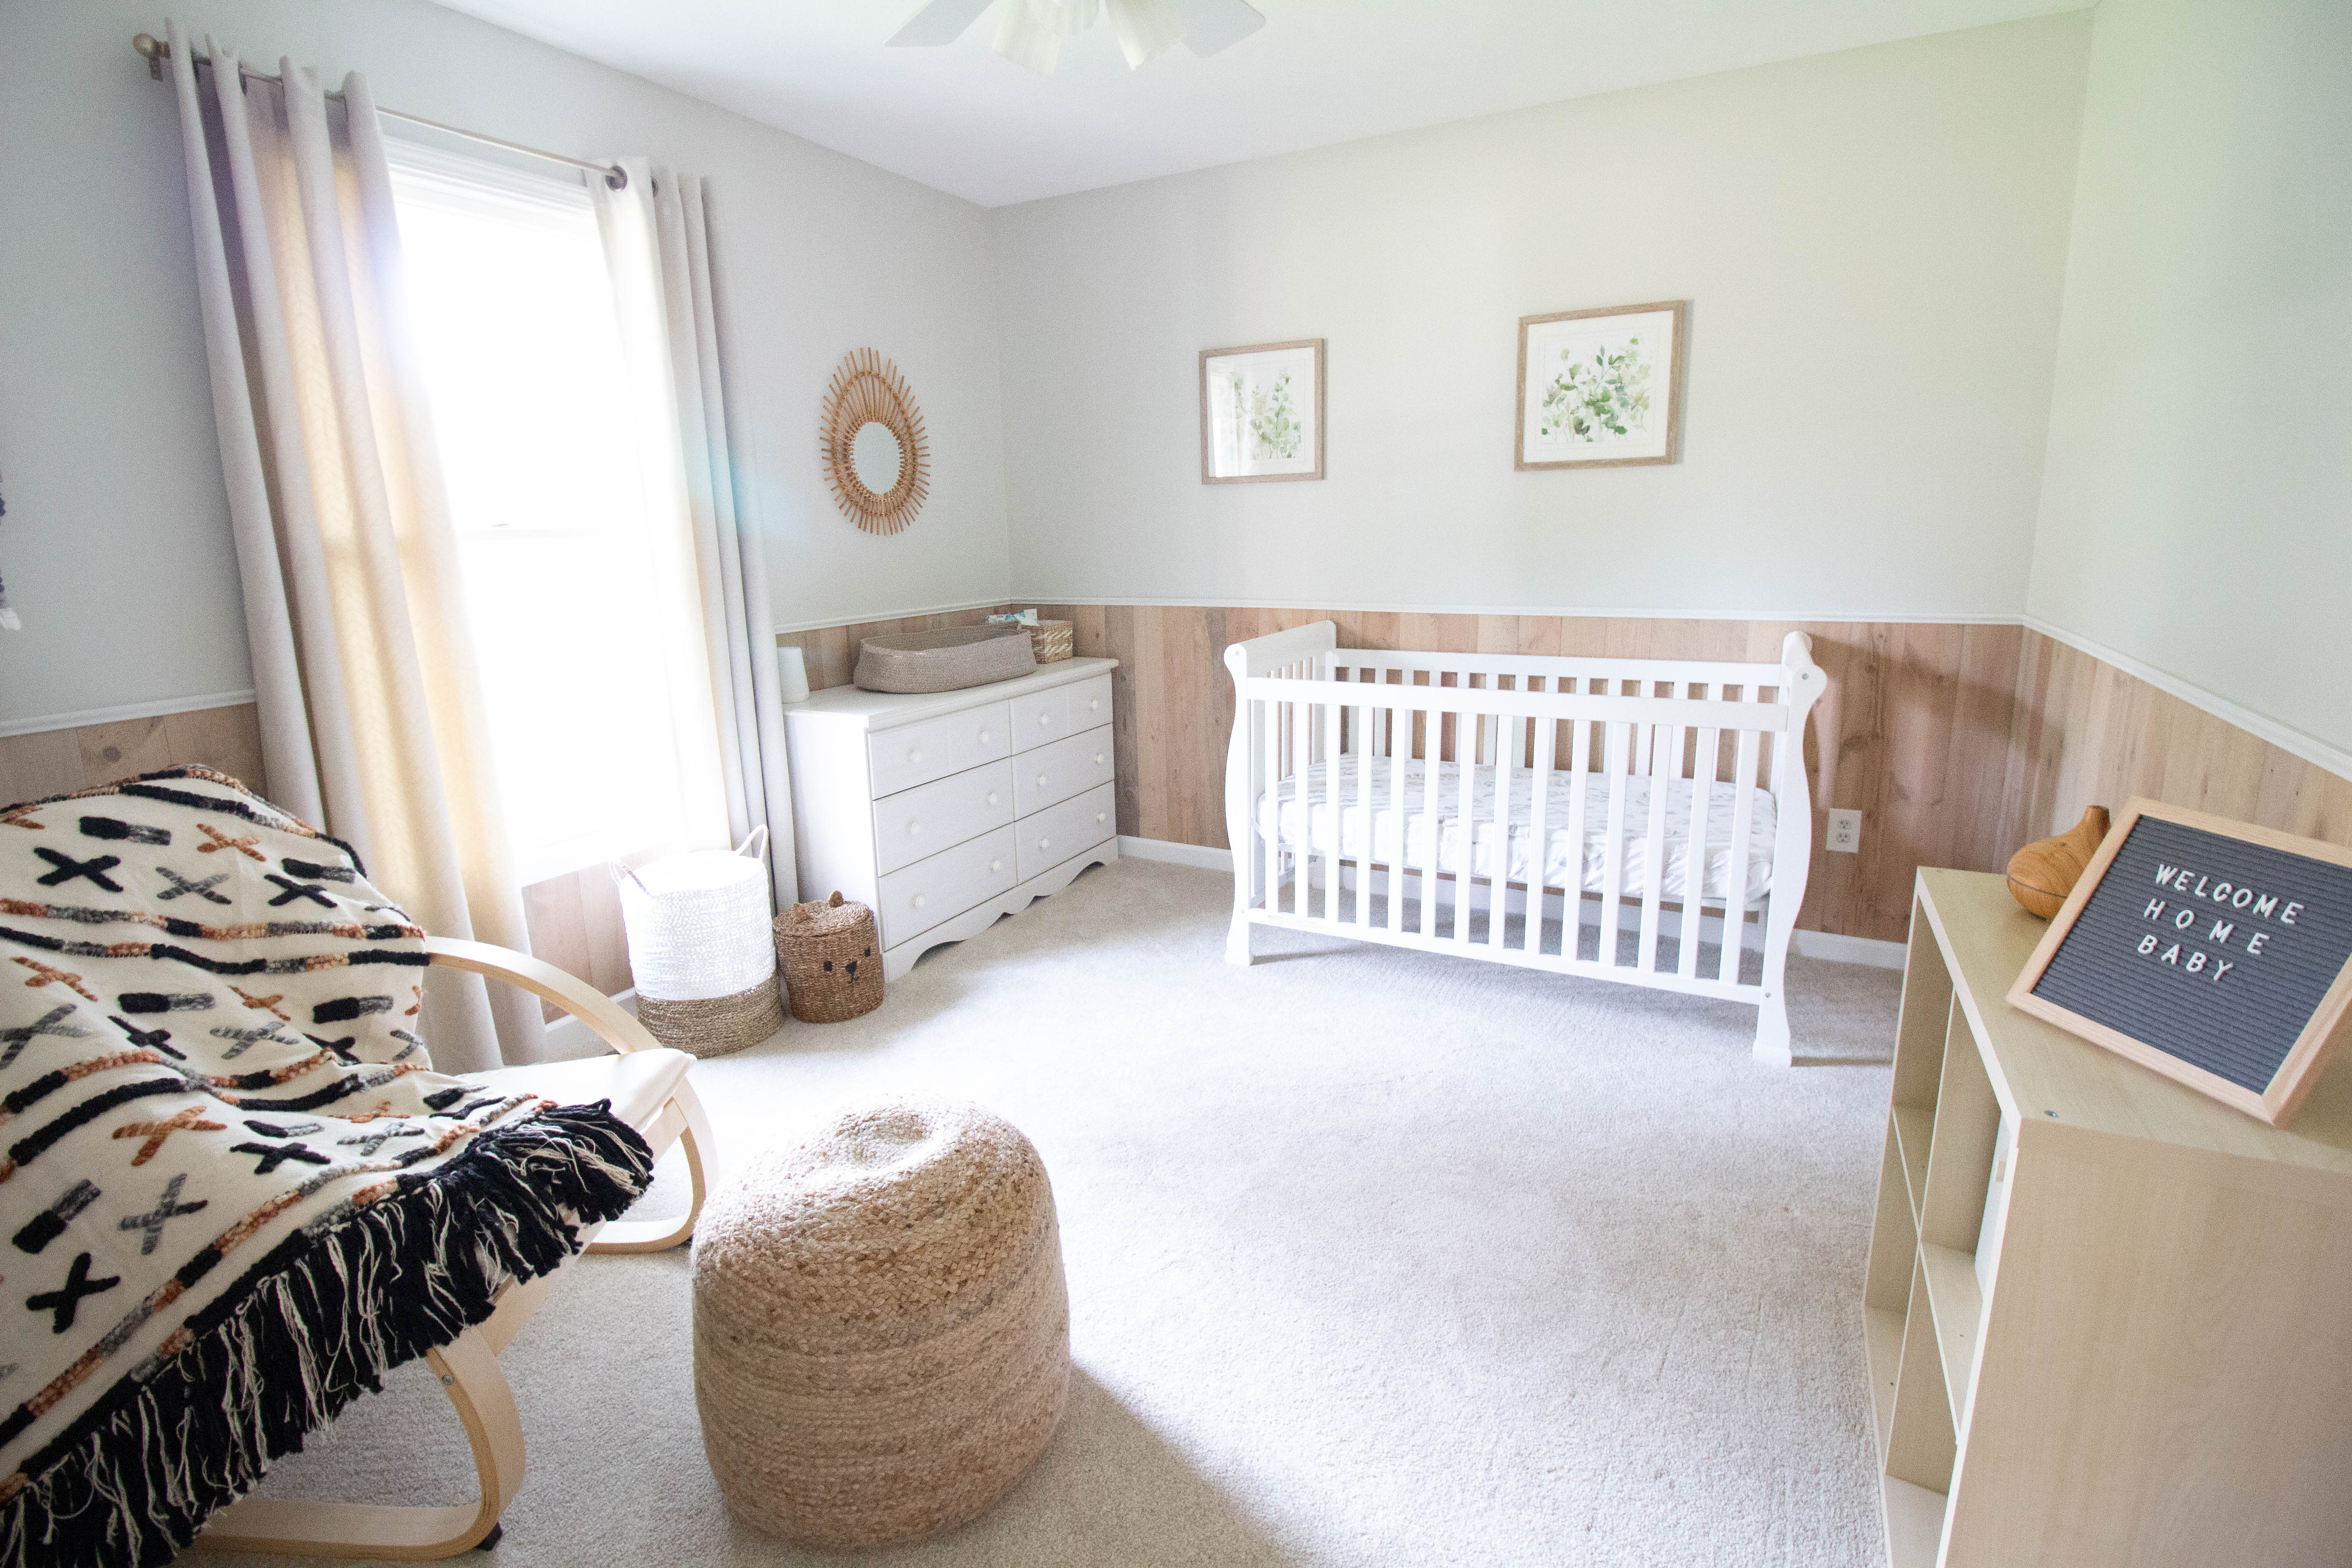 easy diy peel and stick wood wall planks wainscoting in a nursery